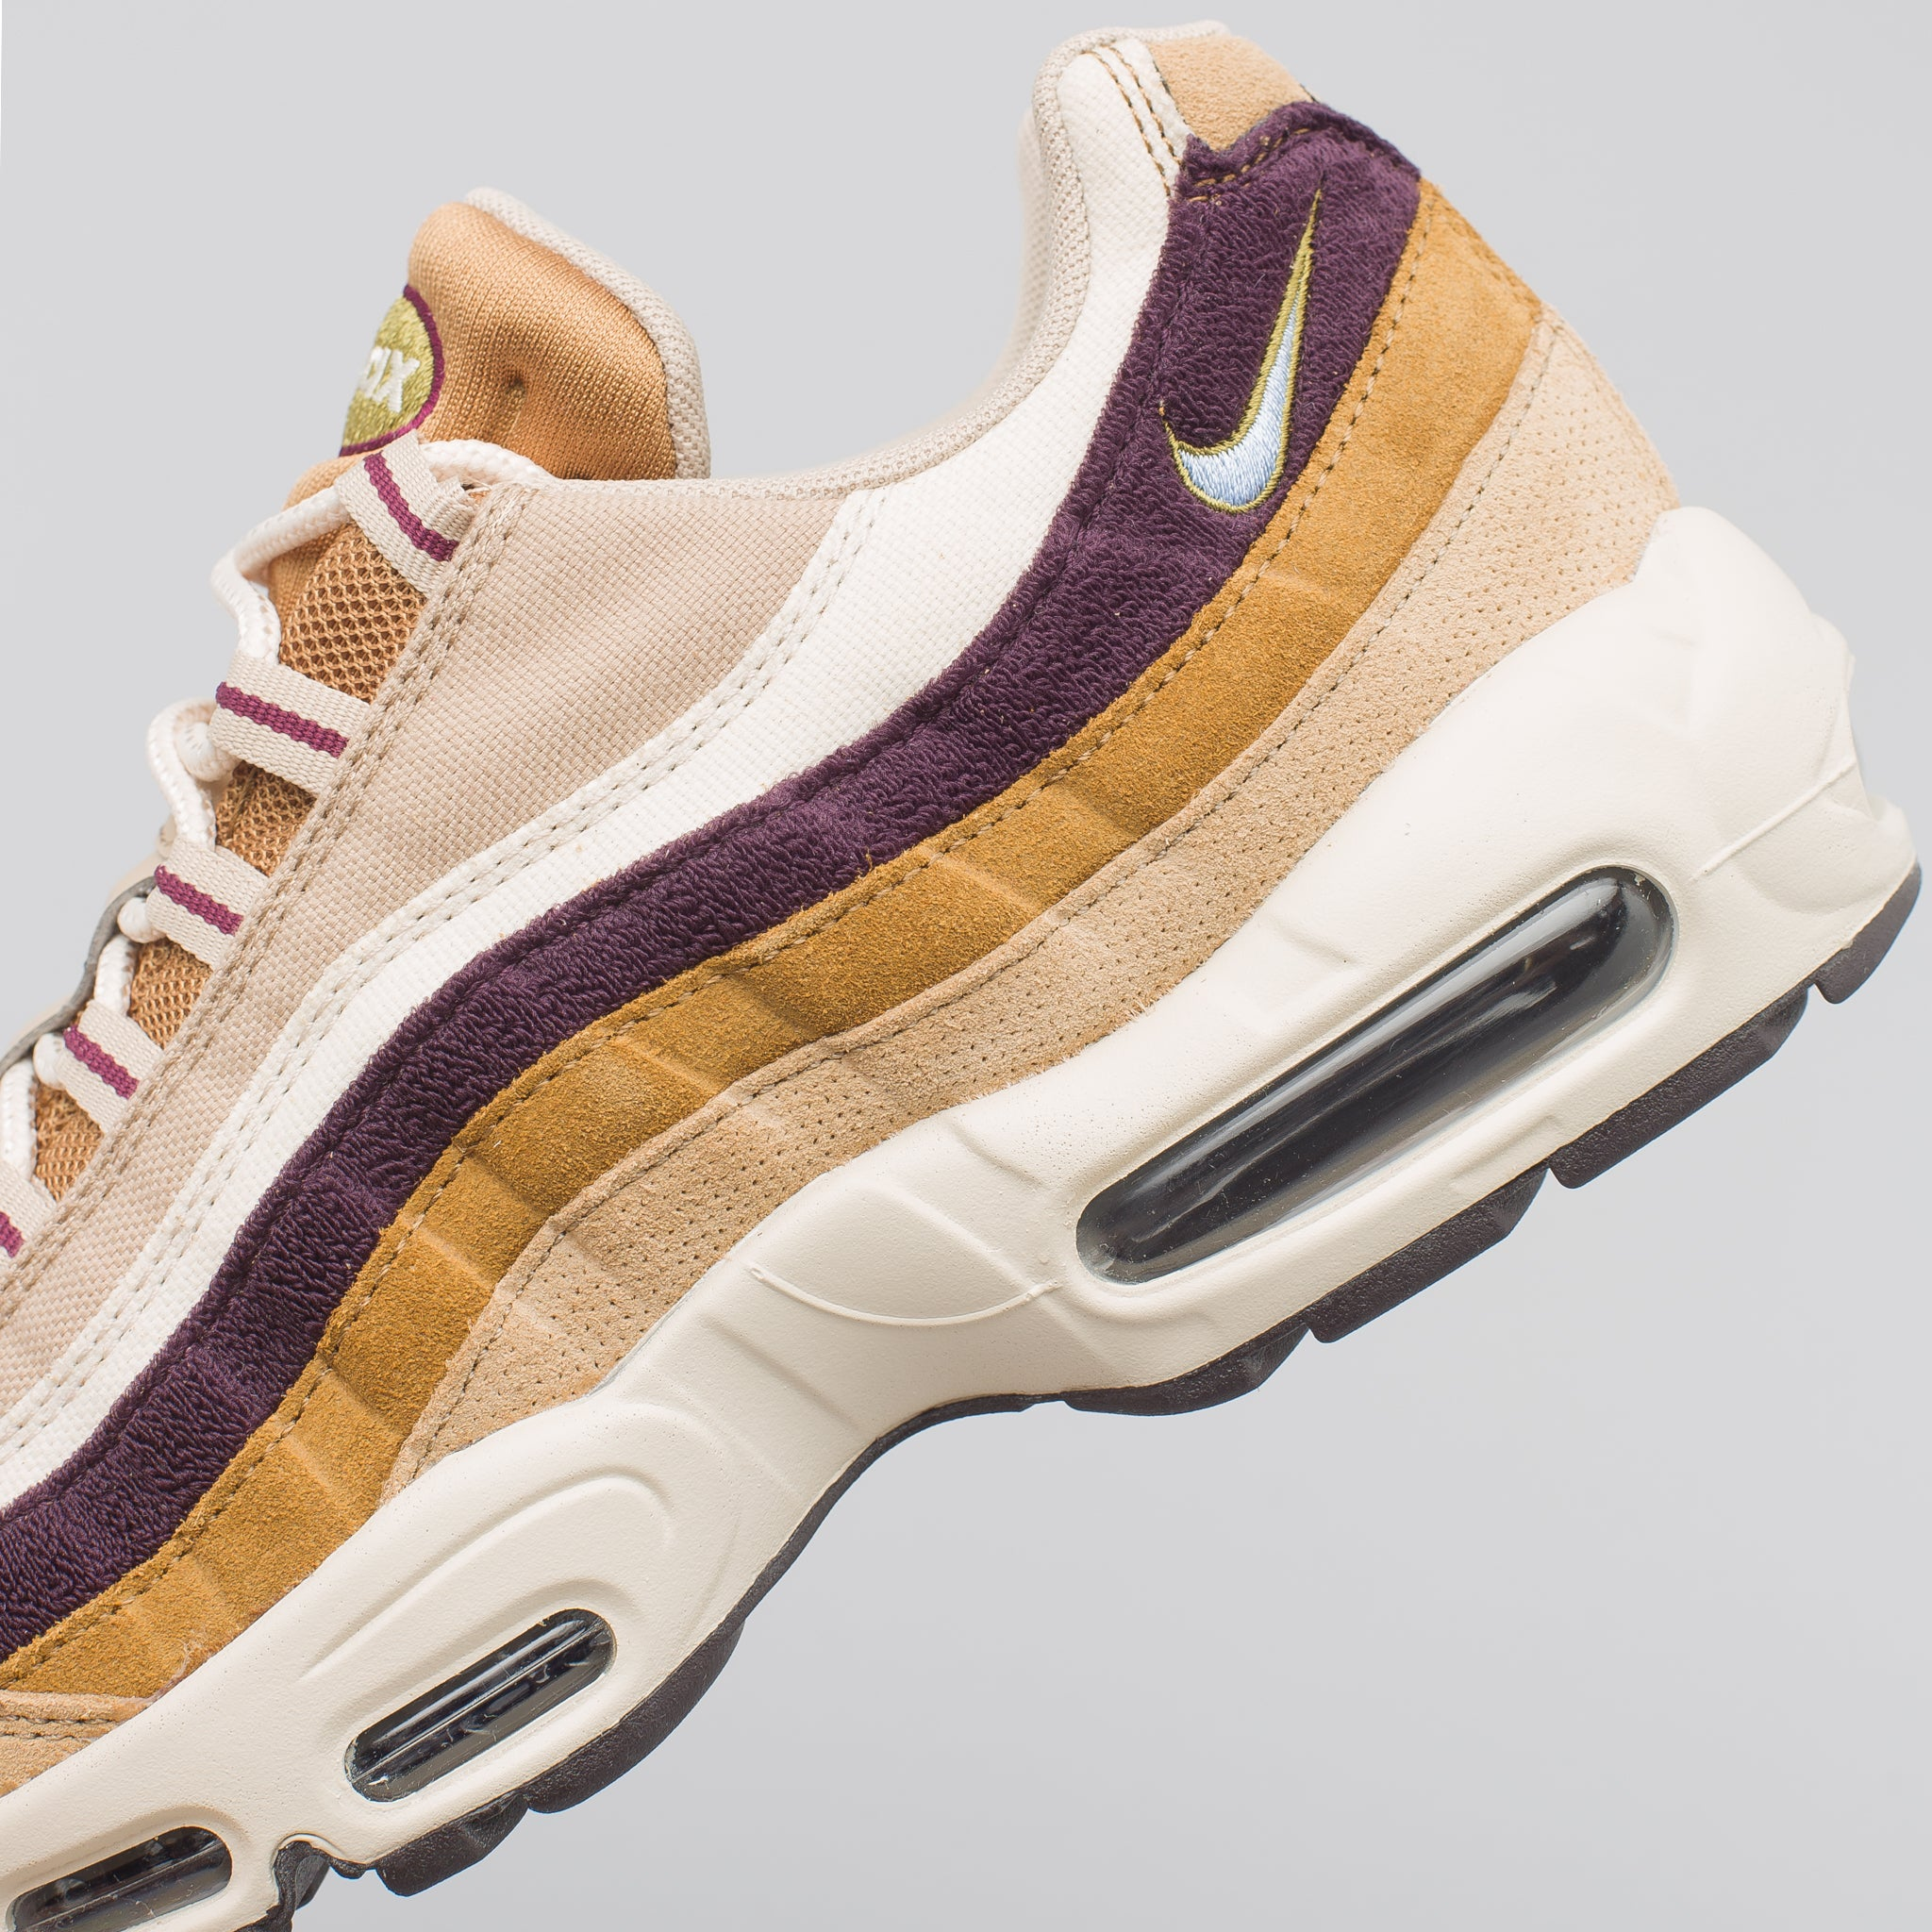 separation shoes 8ee33 0bd72 ... low price air max 95 premium in desert 10105 dffe3 ...